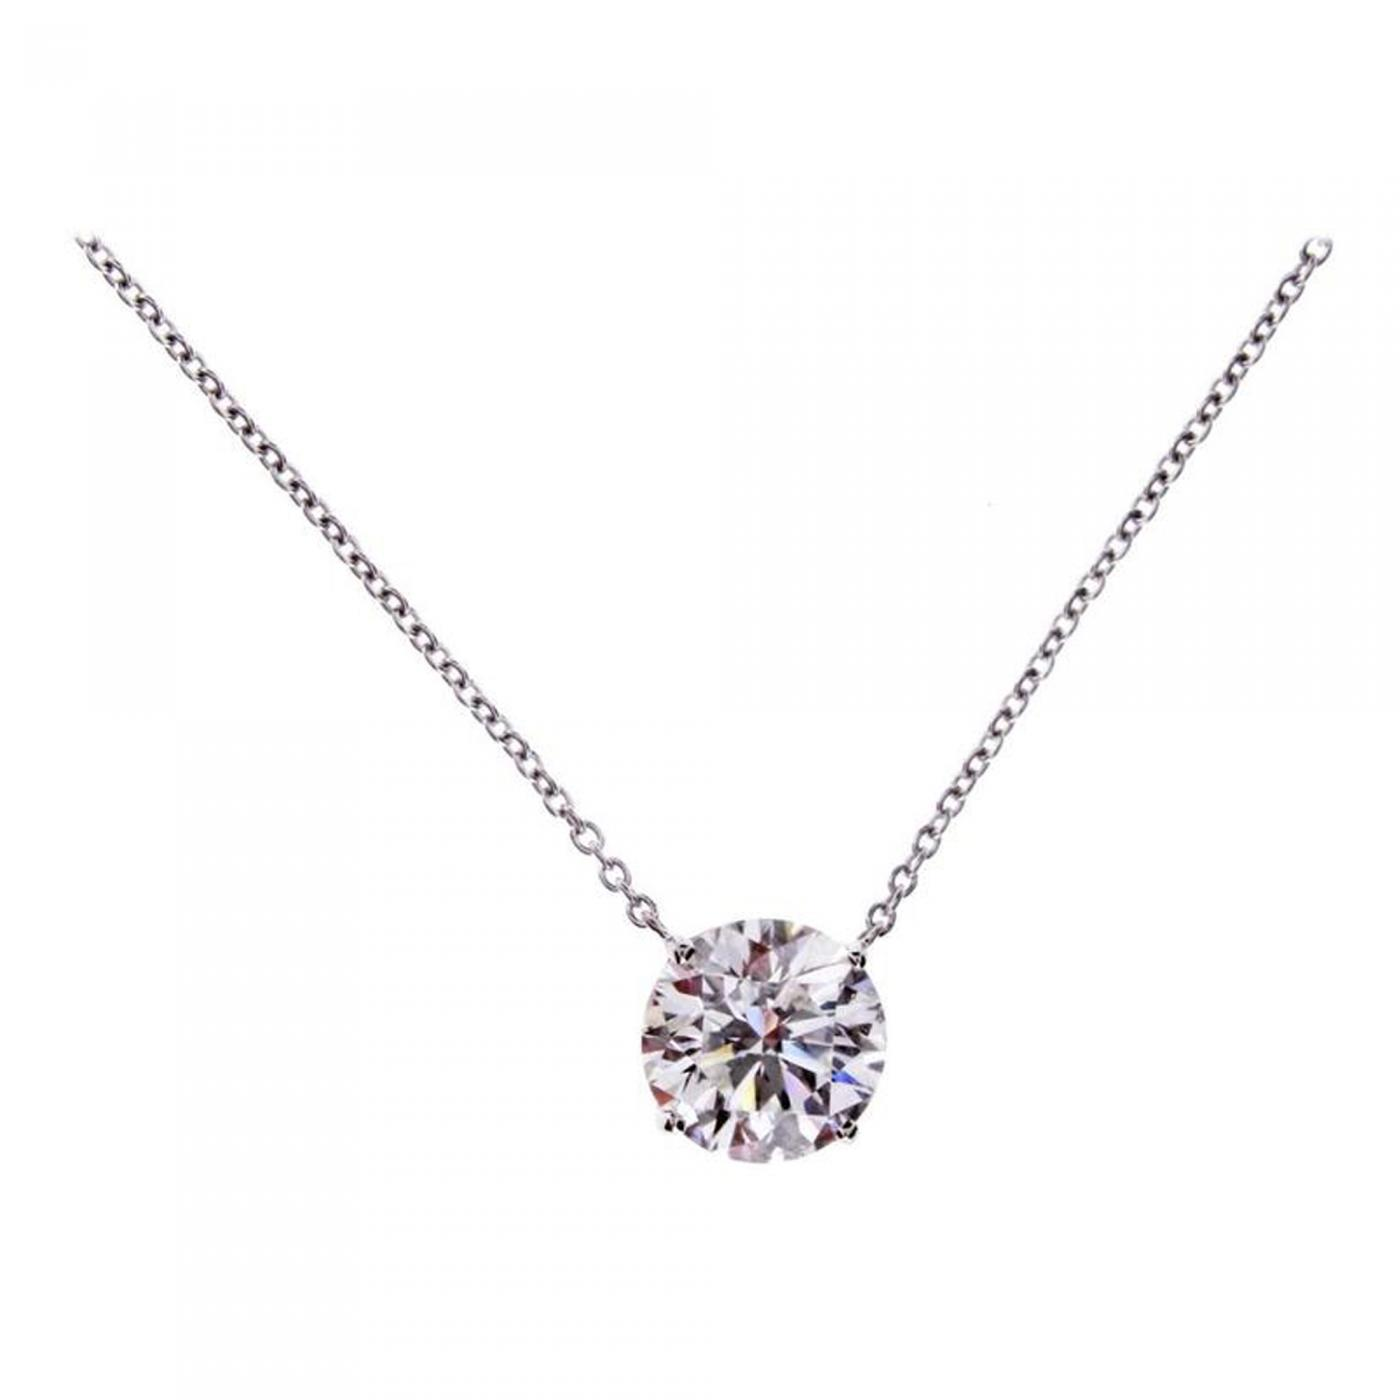 solitare jewelry diamond npdia necklace solitaire sollp designs necklaces